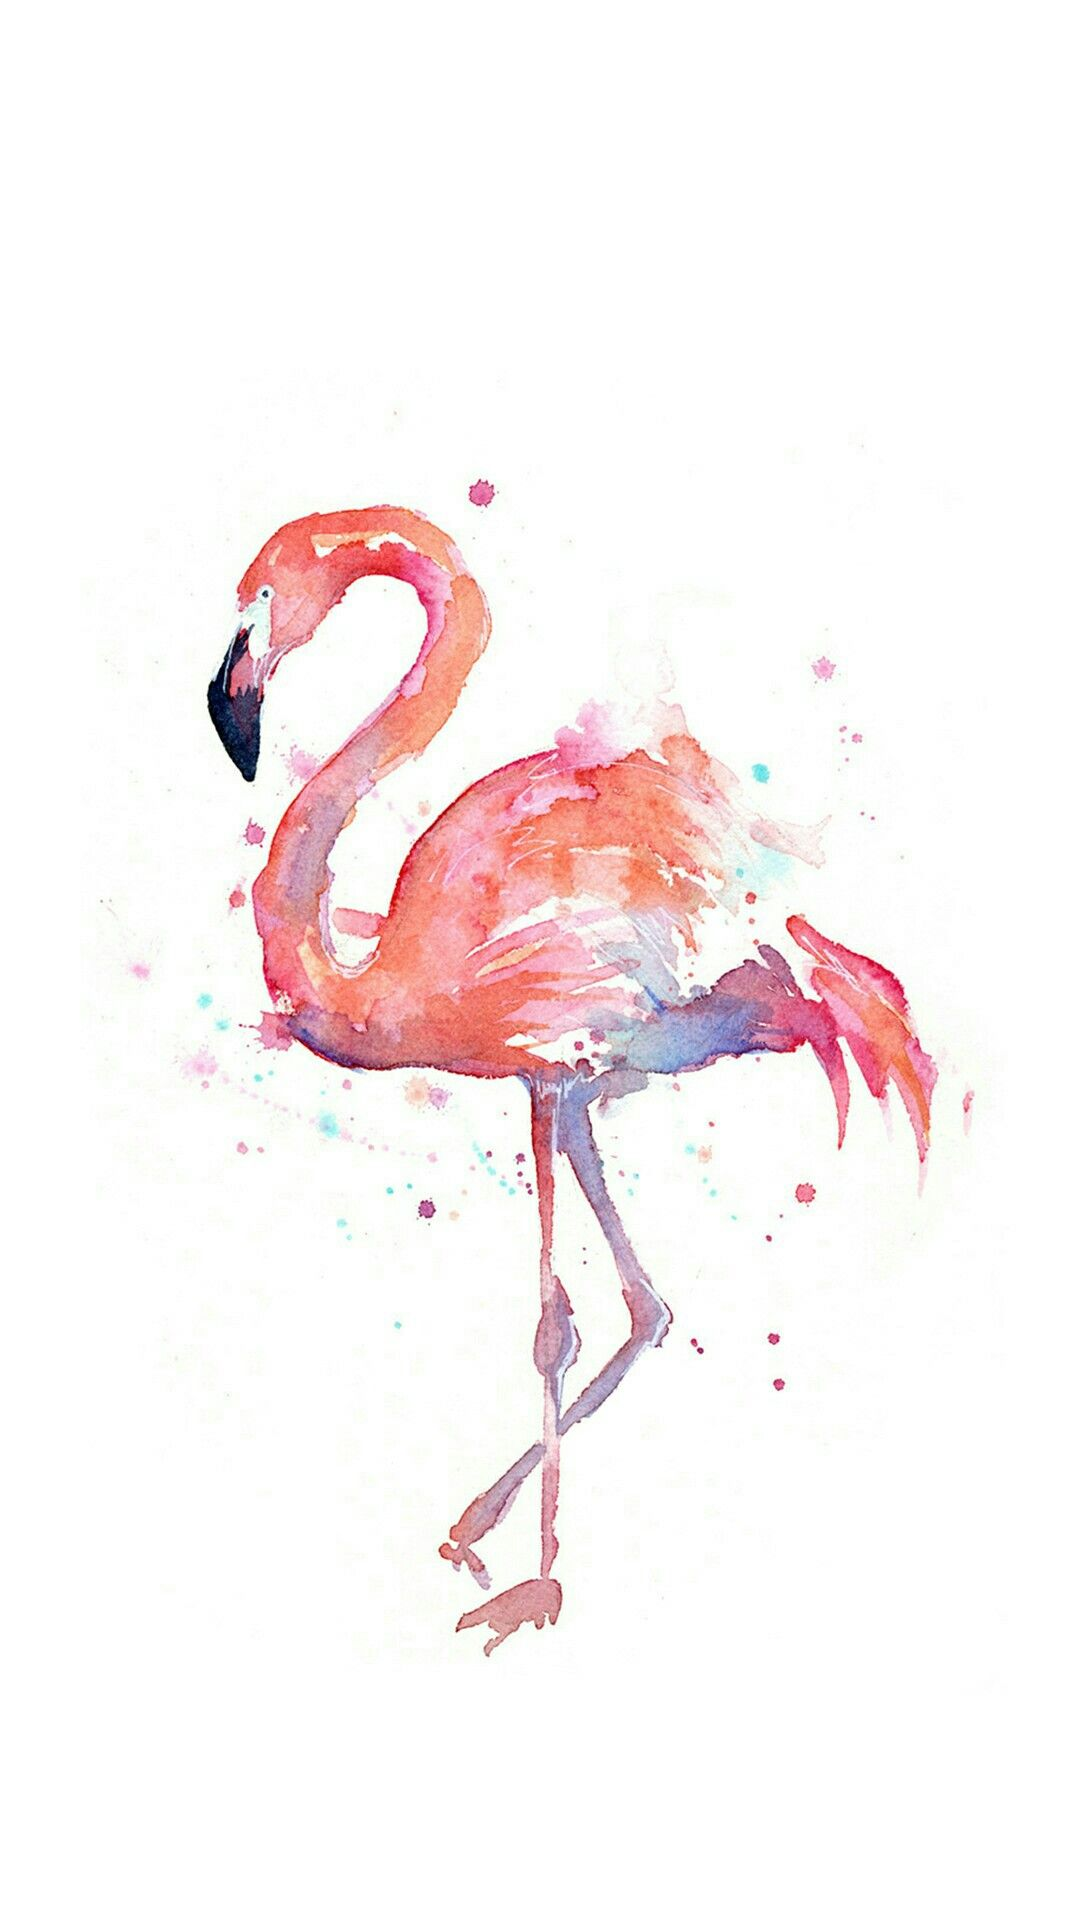 From 10,000+ wallpapers | Cool Pictures | Art, Flamingo ...